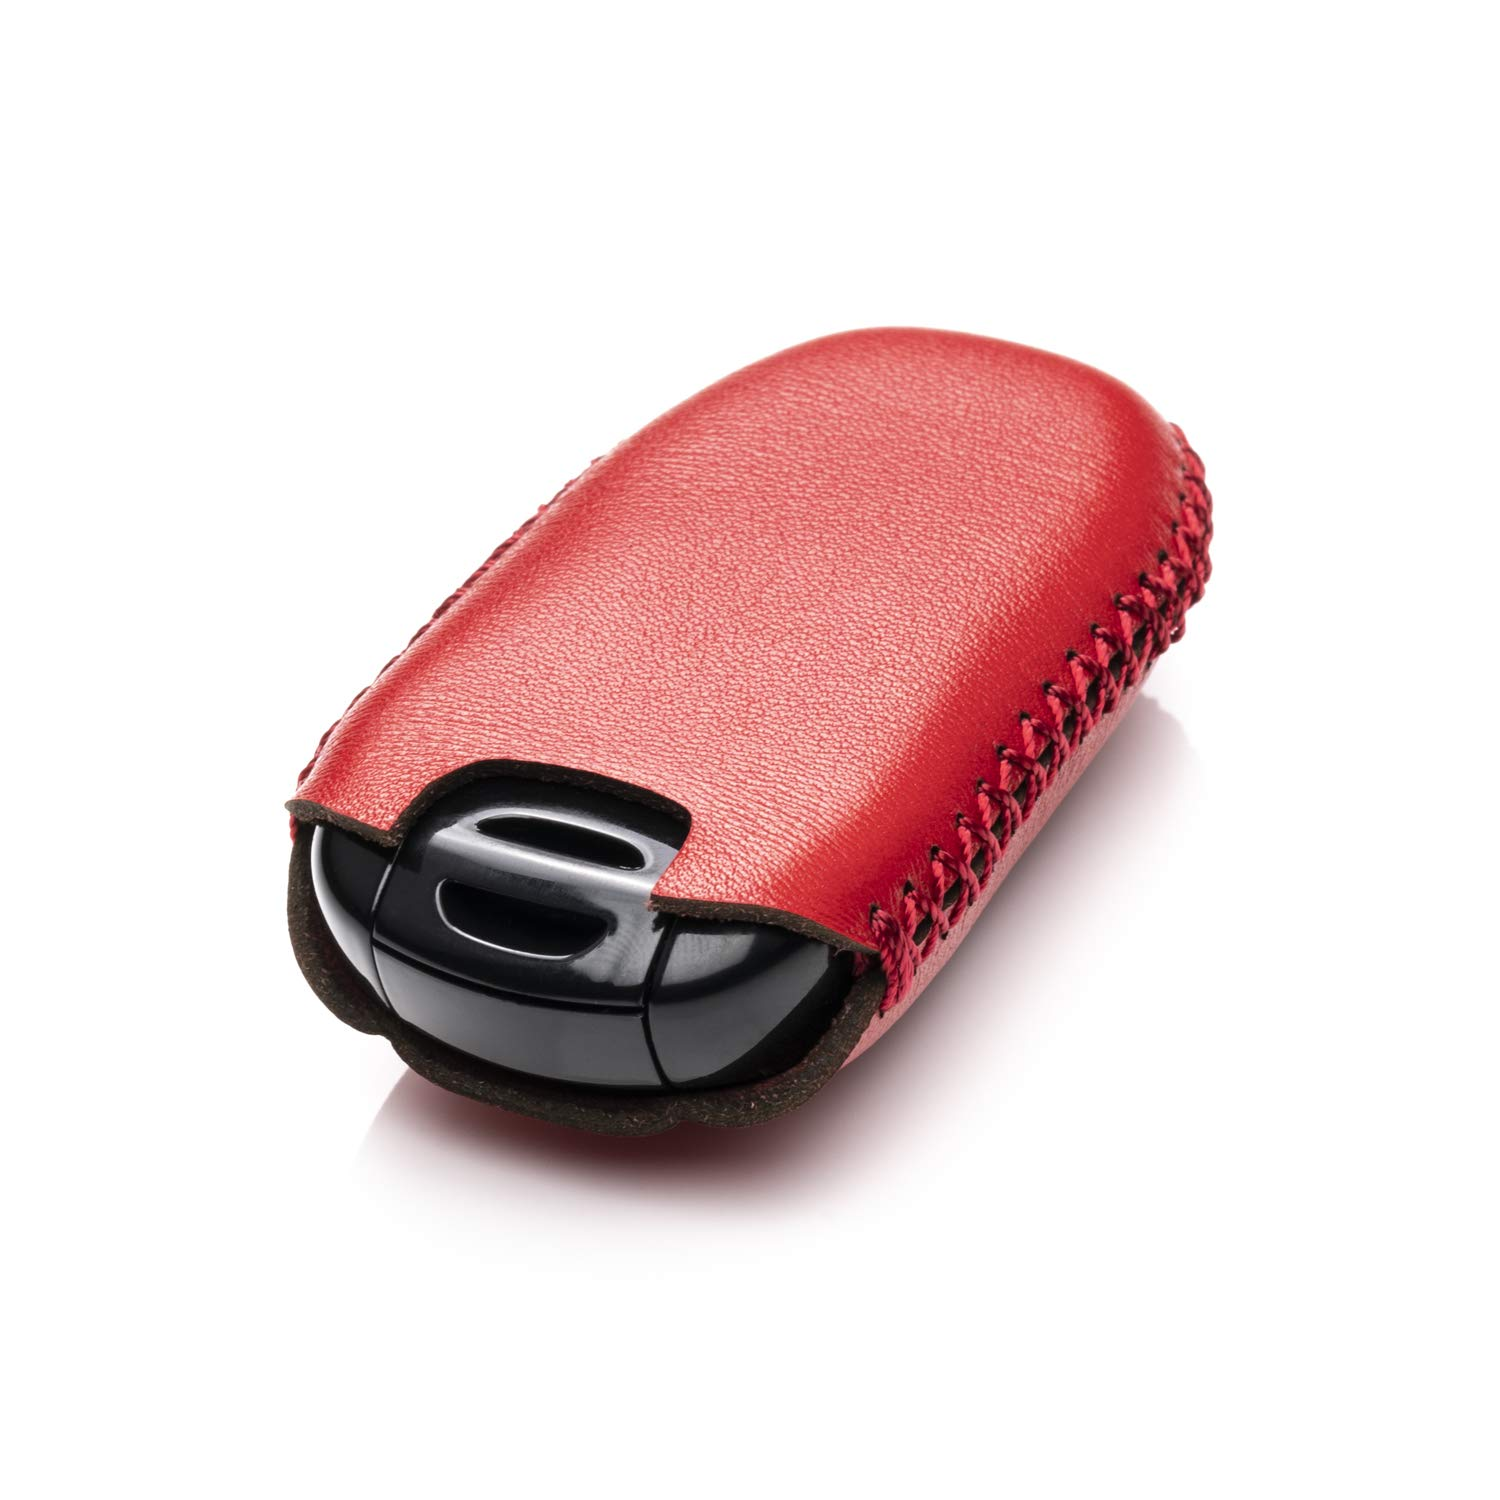 Vitodeco Genuine Leather Keyless Entry Remote Control Smart Key Case Cover with Leather Key Chain for Tesla Model X Red